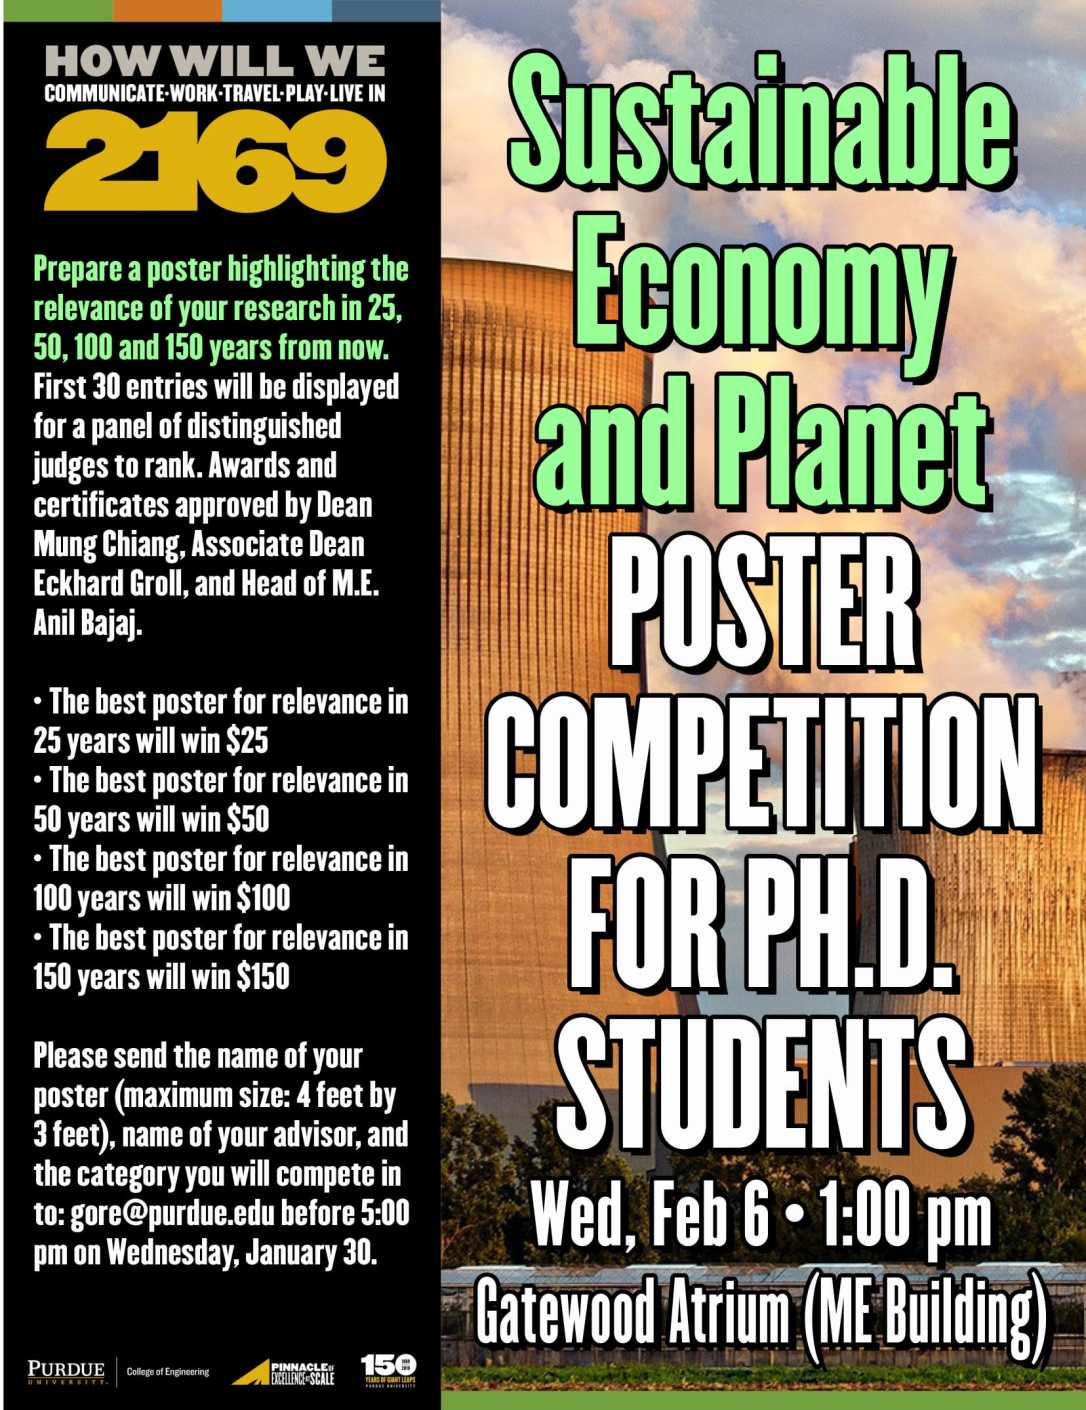 2169-PhD-Poster-Show-1